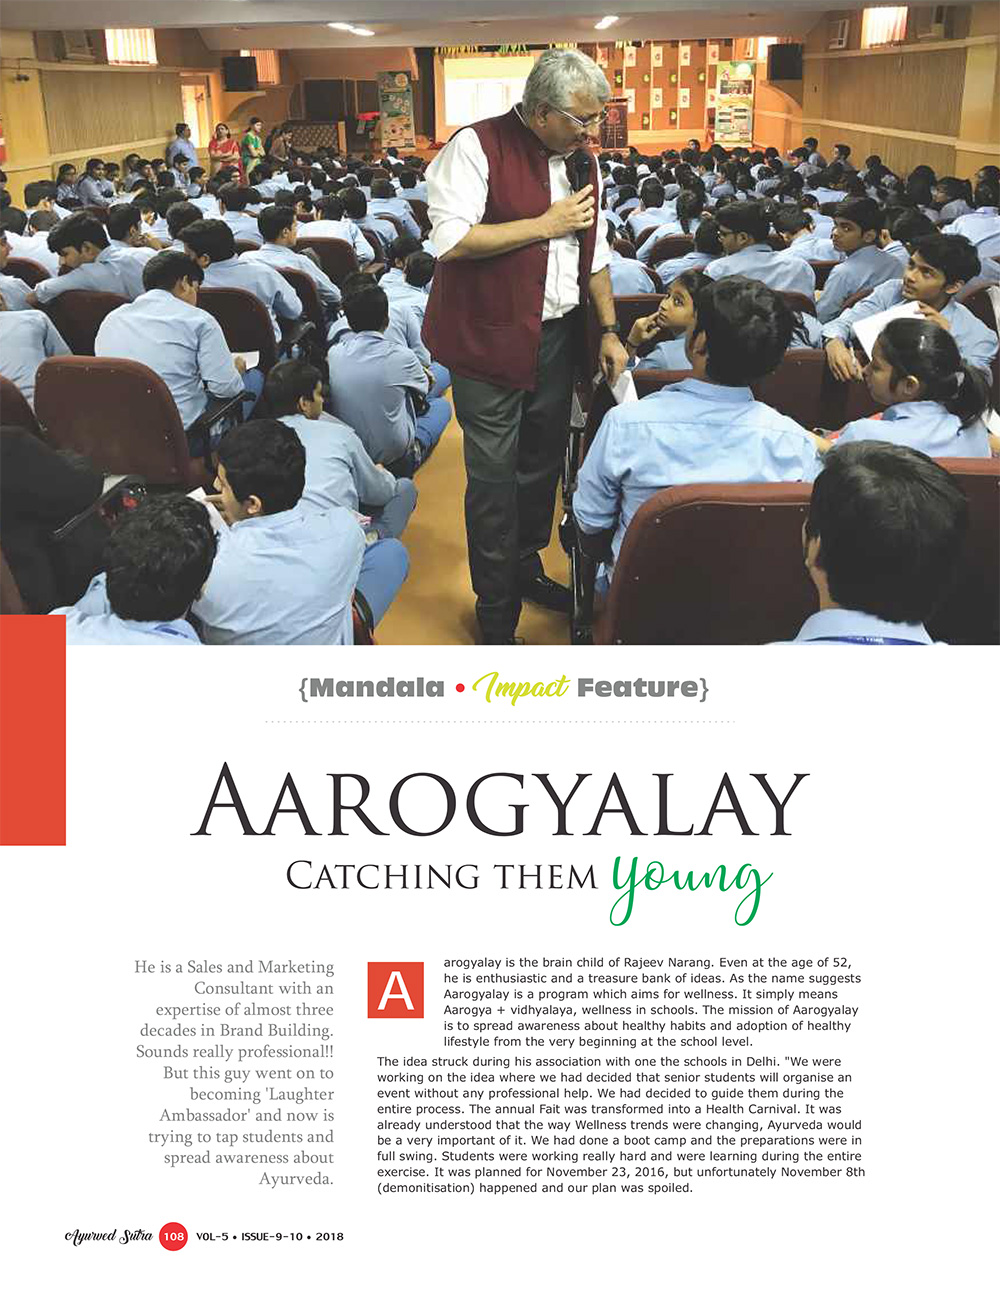 Ayurvedsutra Vol 05 issue 09 10 110 - Aarogyalay Catching them Young